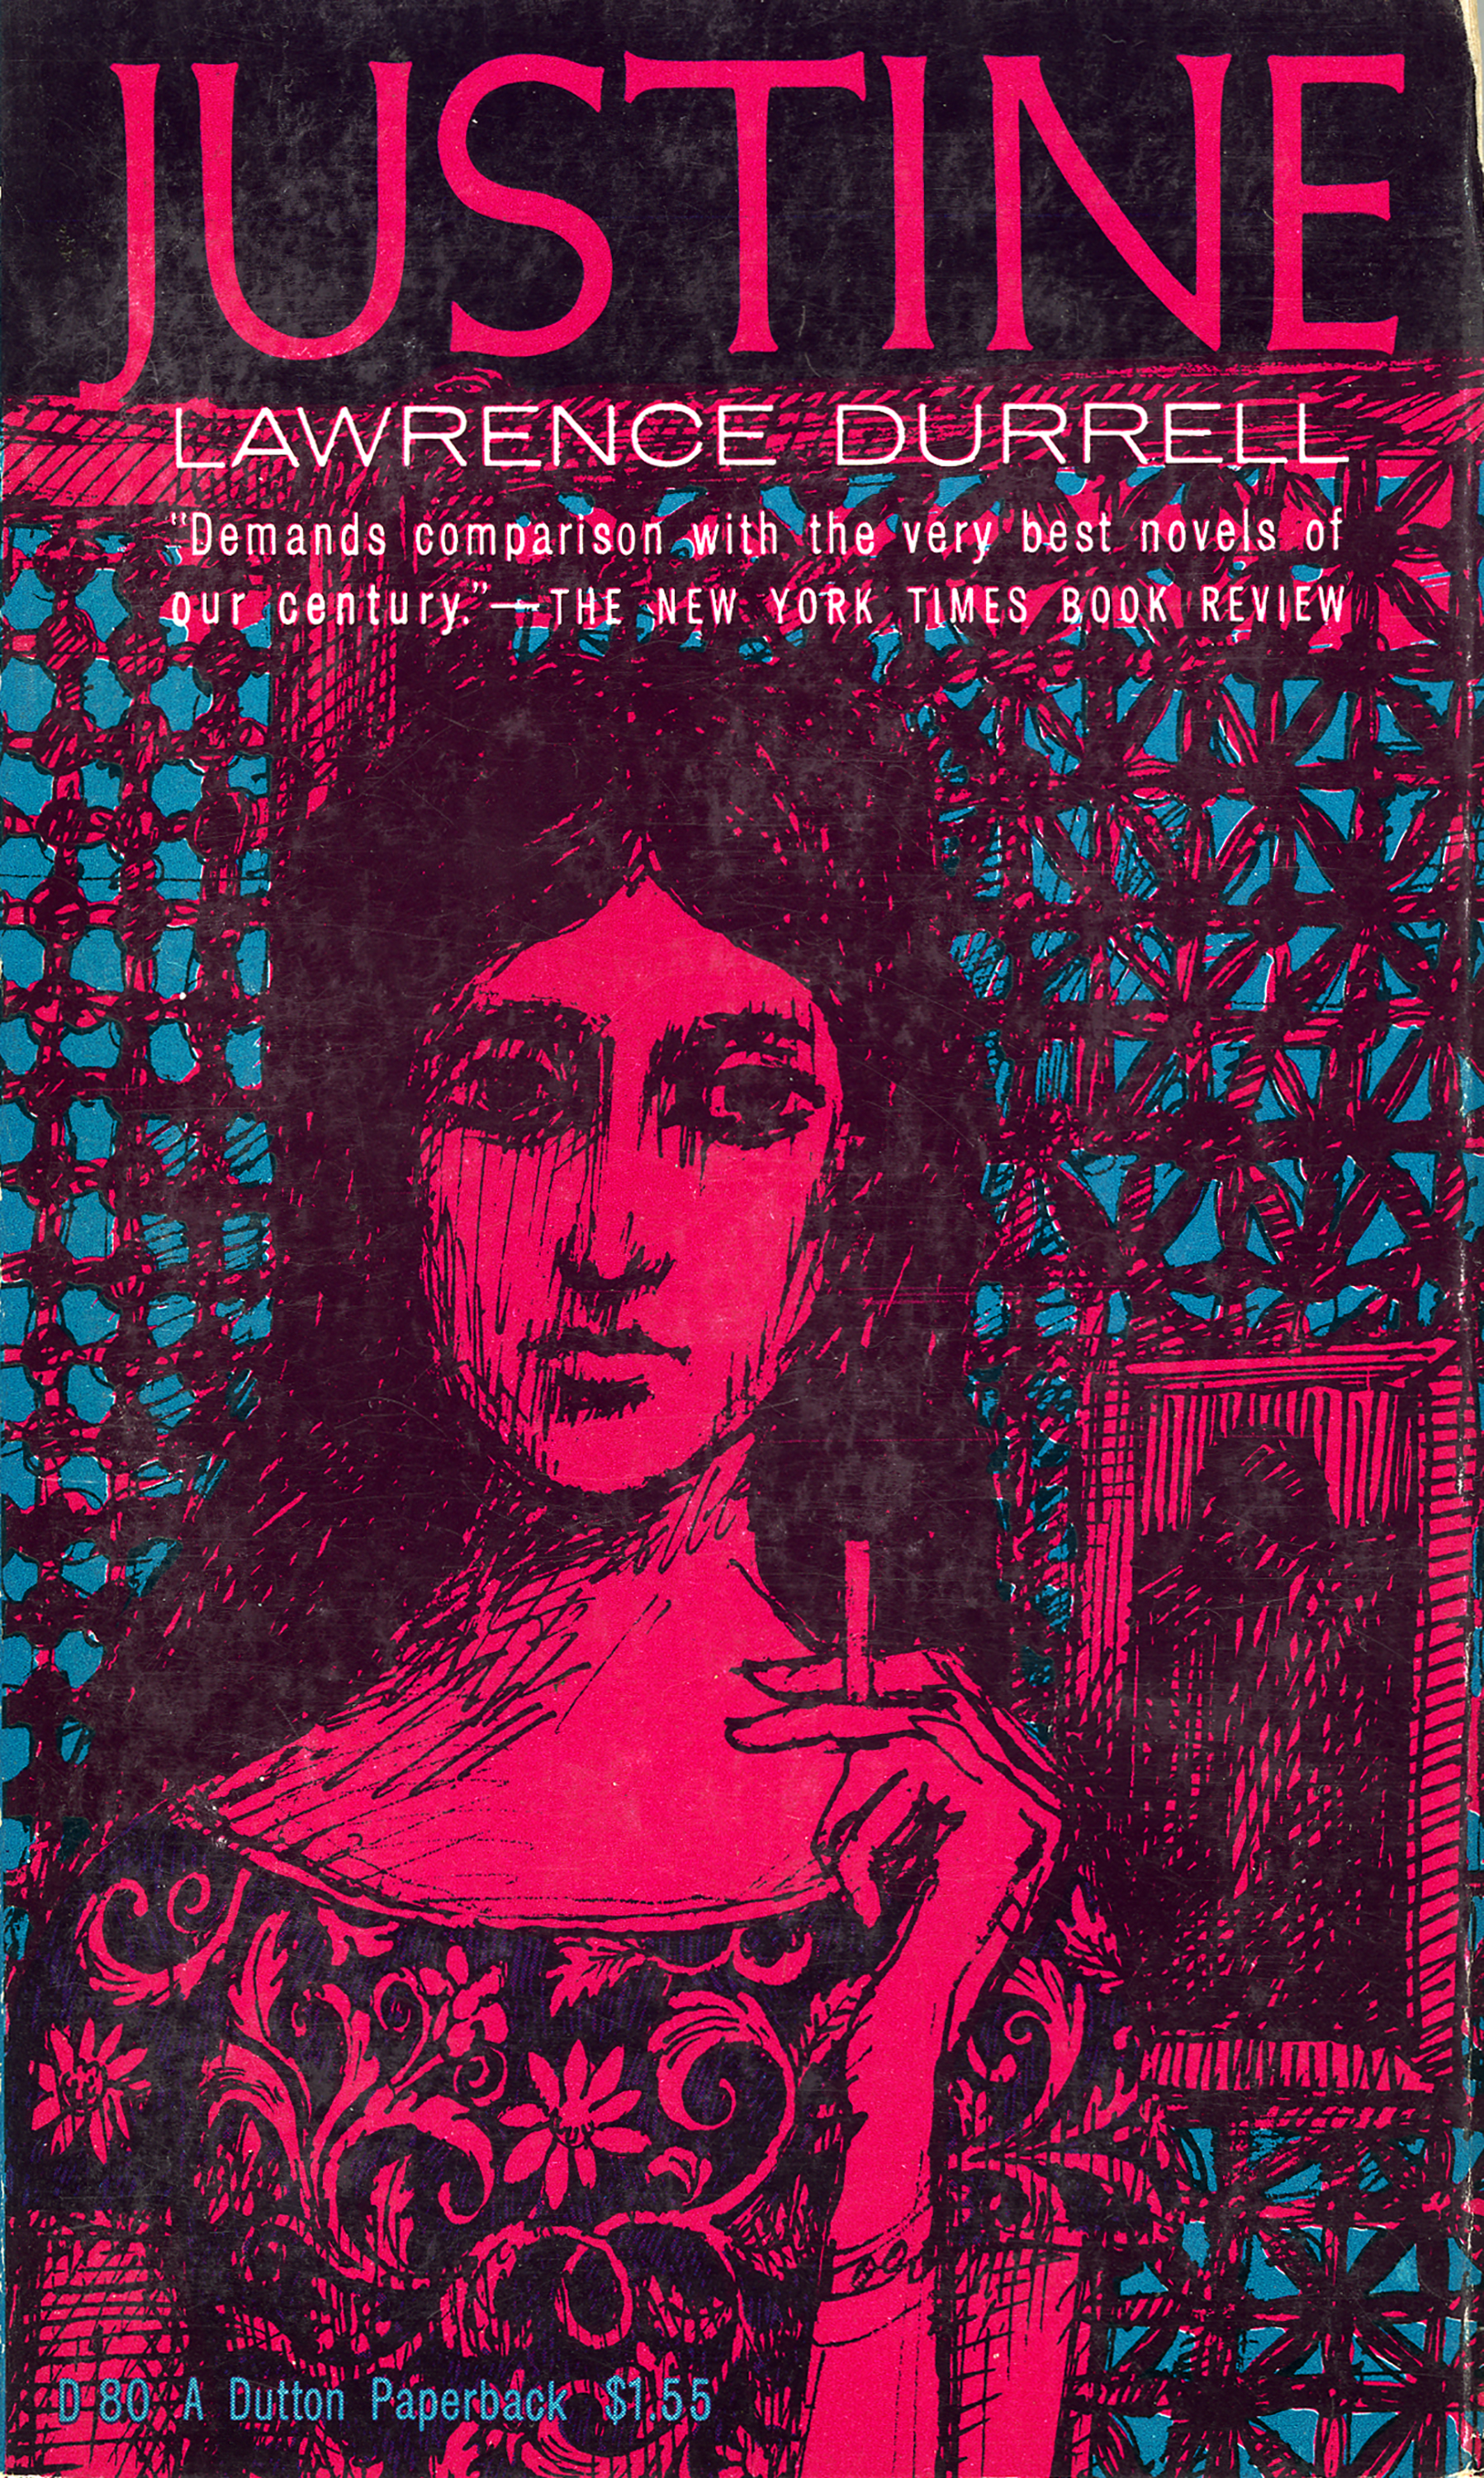 Book cover with a drawing of a woman smoking a cigarette against an ornate pattern.